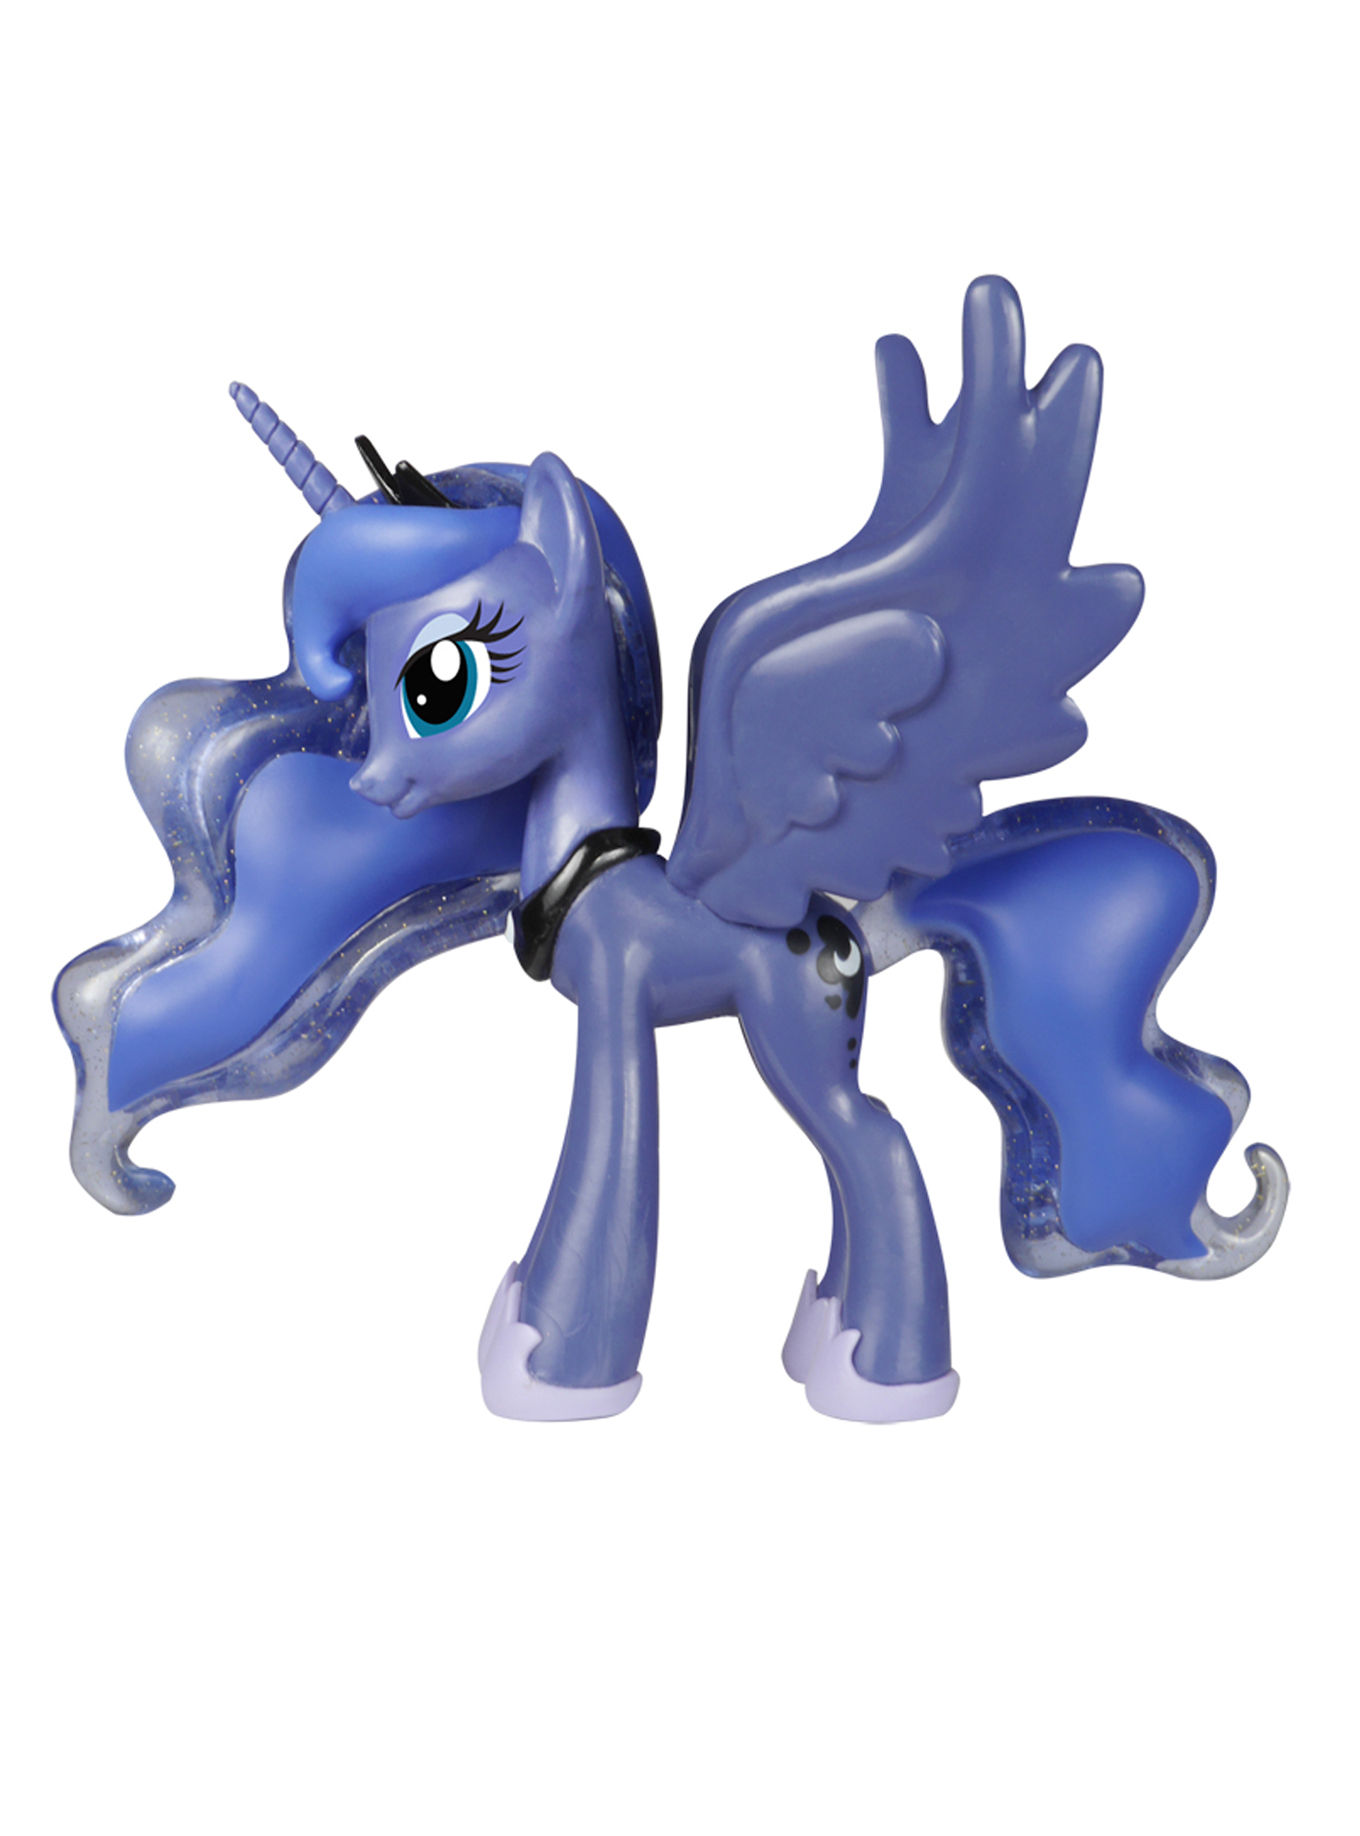 Next Wave Of My Little Pony Vinyls Revealed And A New Hot